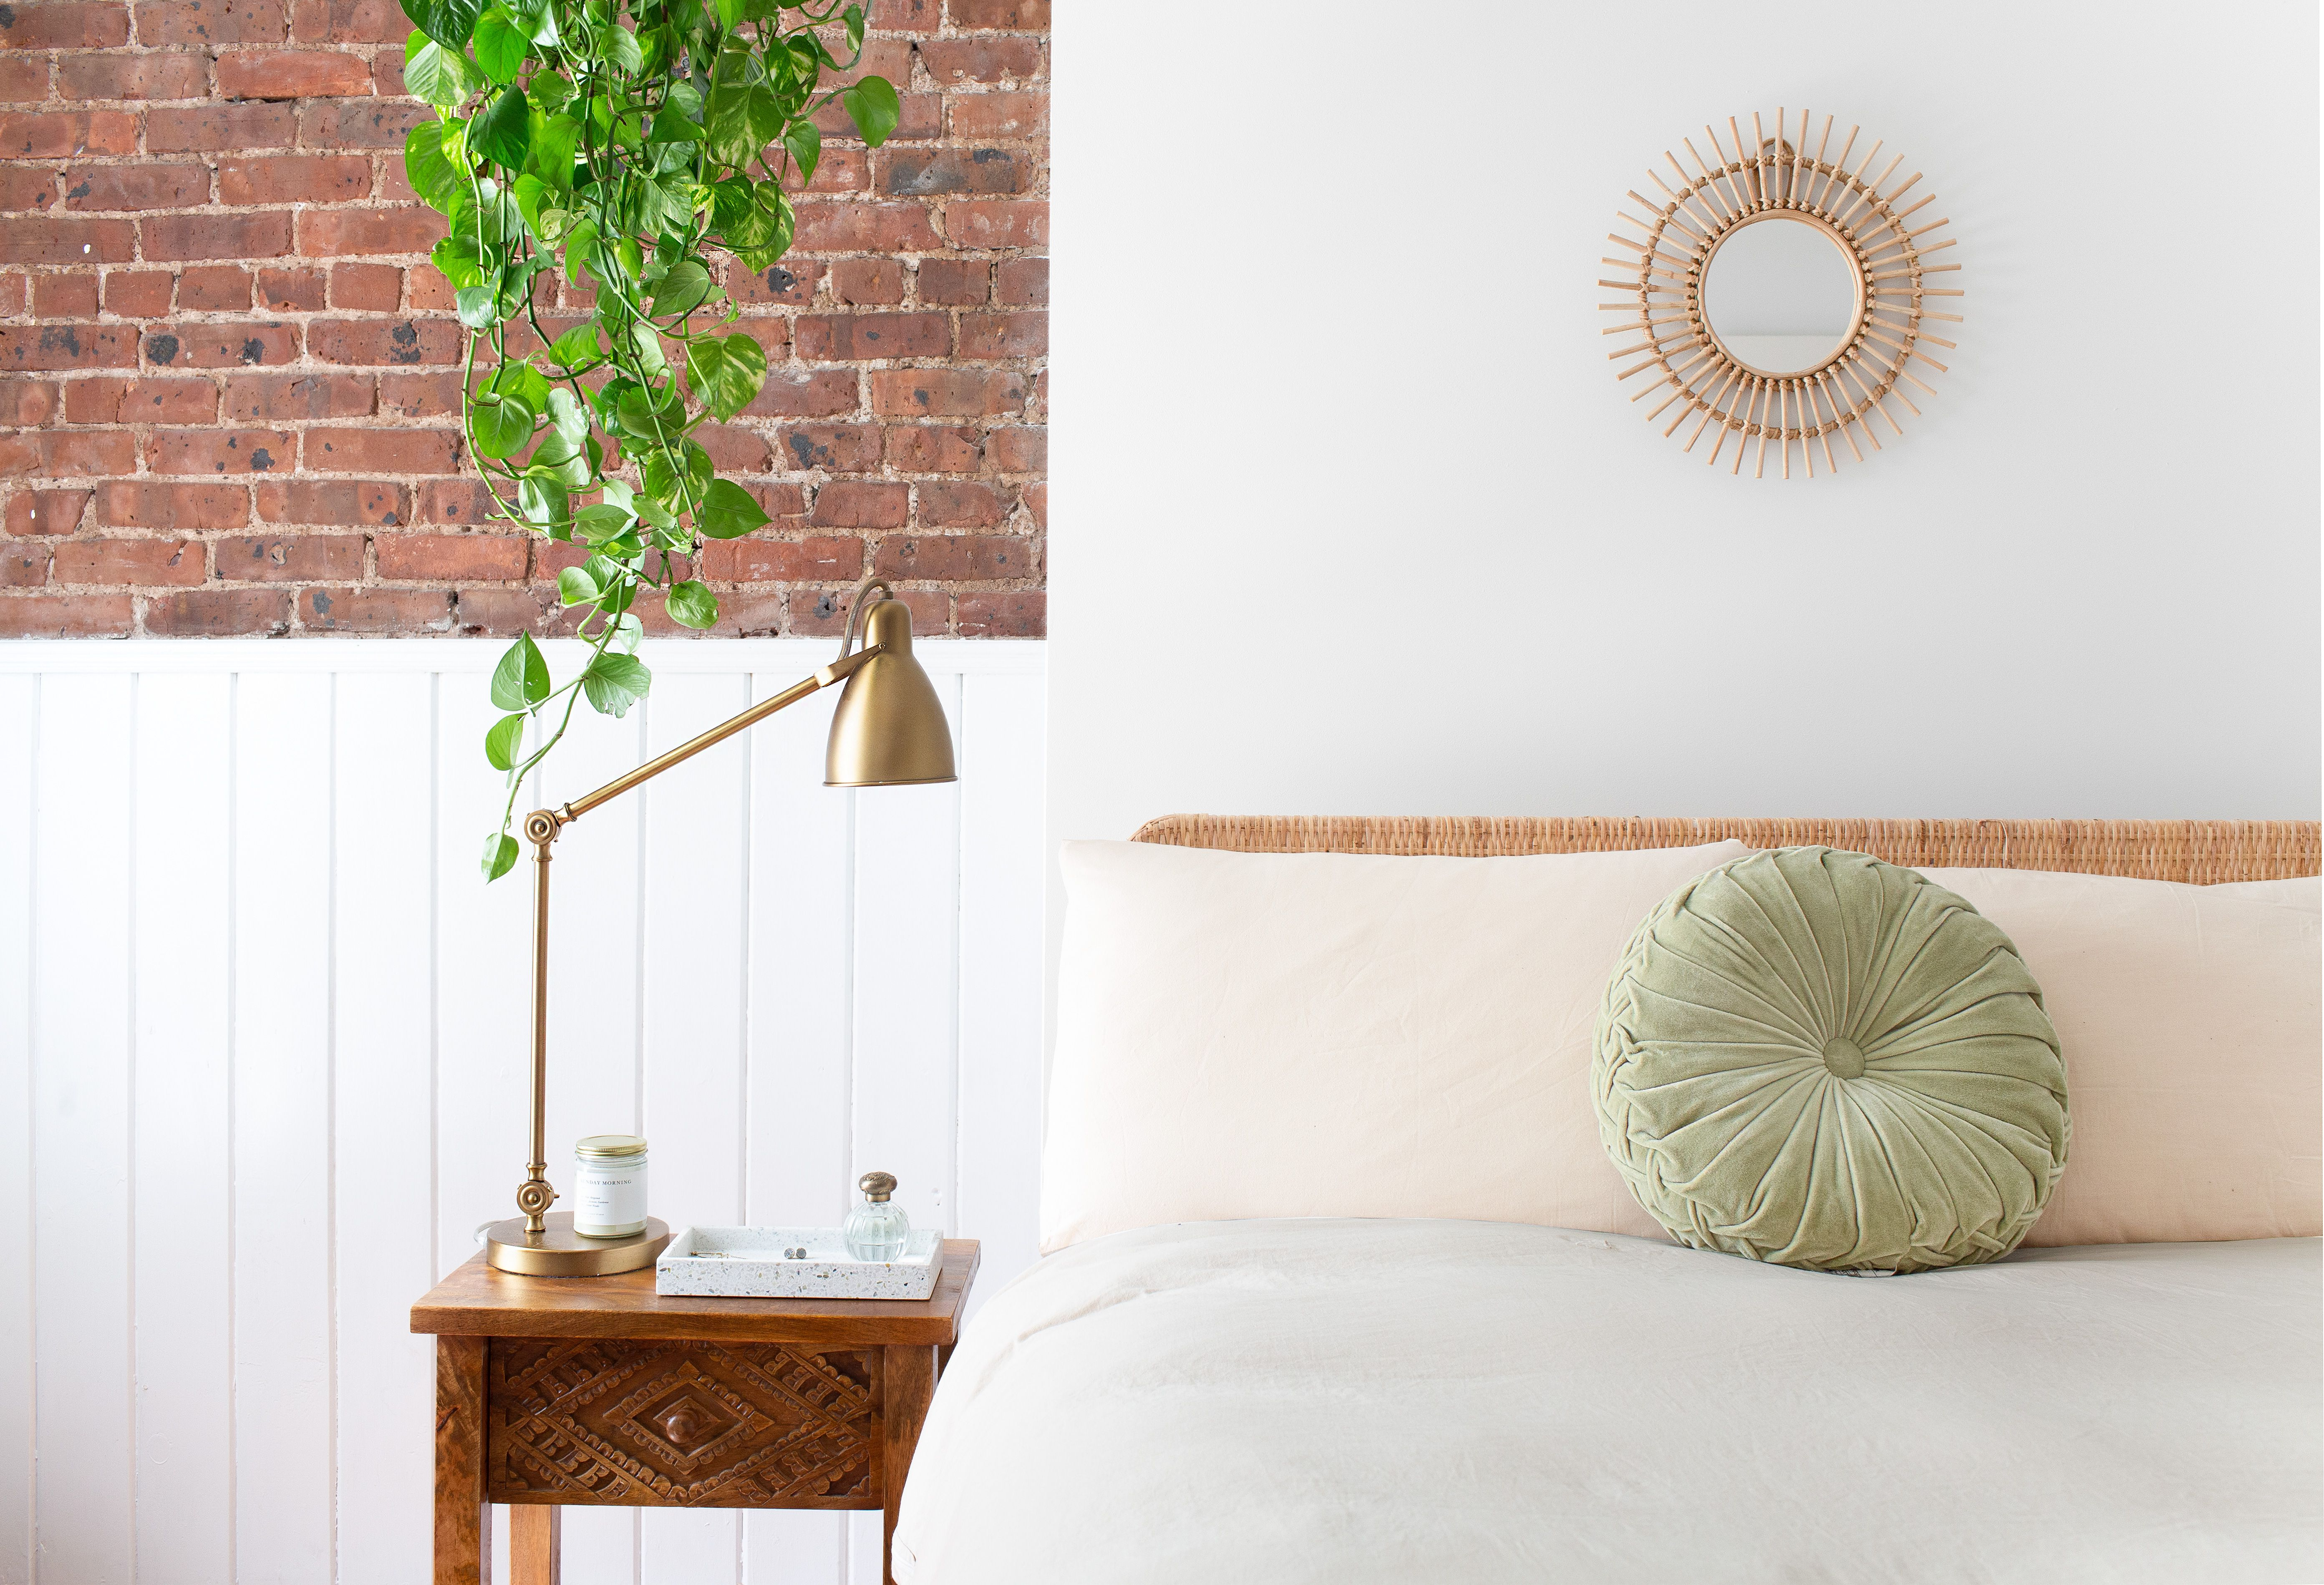 10 easy ways to make your home look inviting in under 10.htm 10 tricks to make your bedroom look expensive  tricks to make your bedroom look expensive